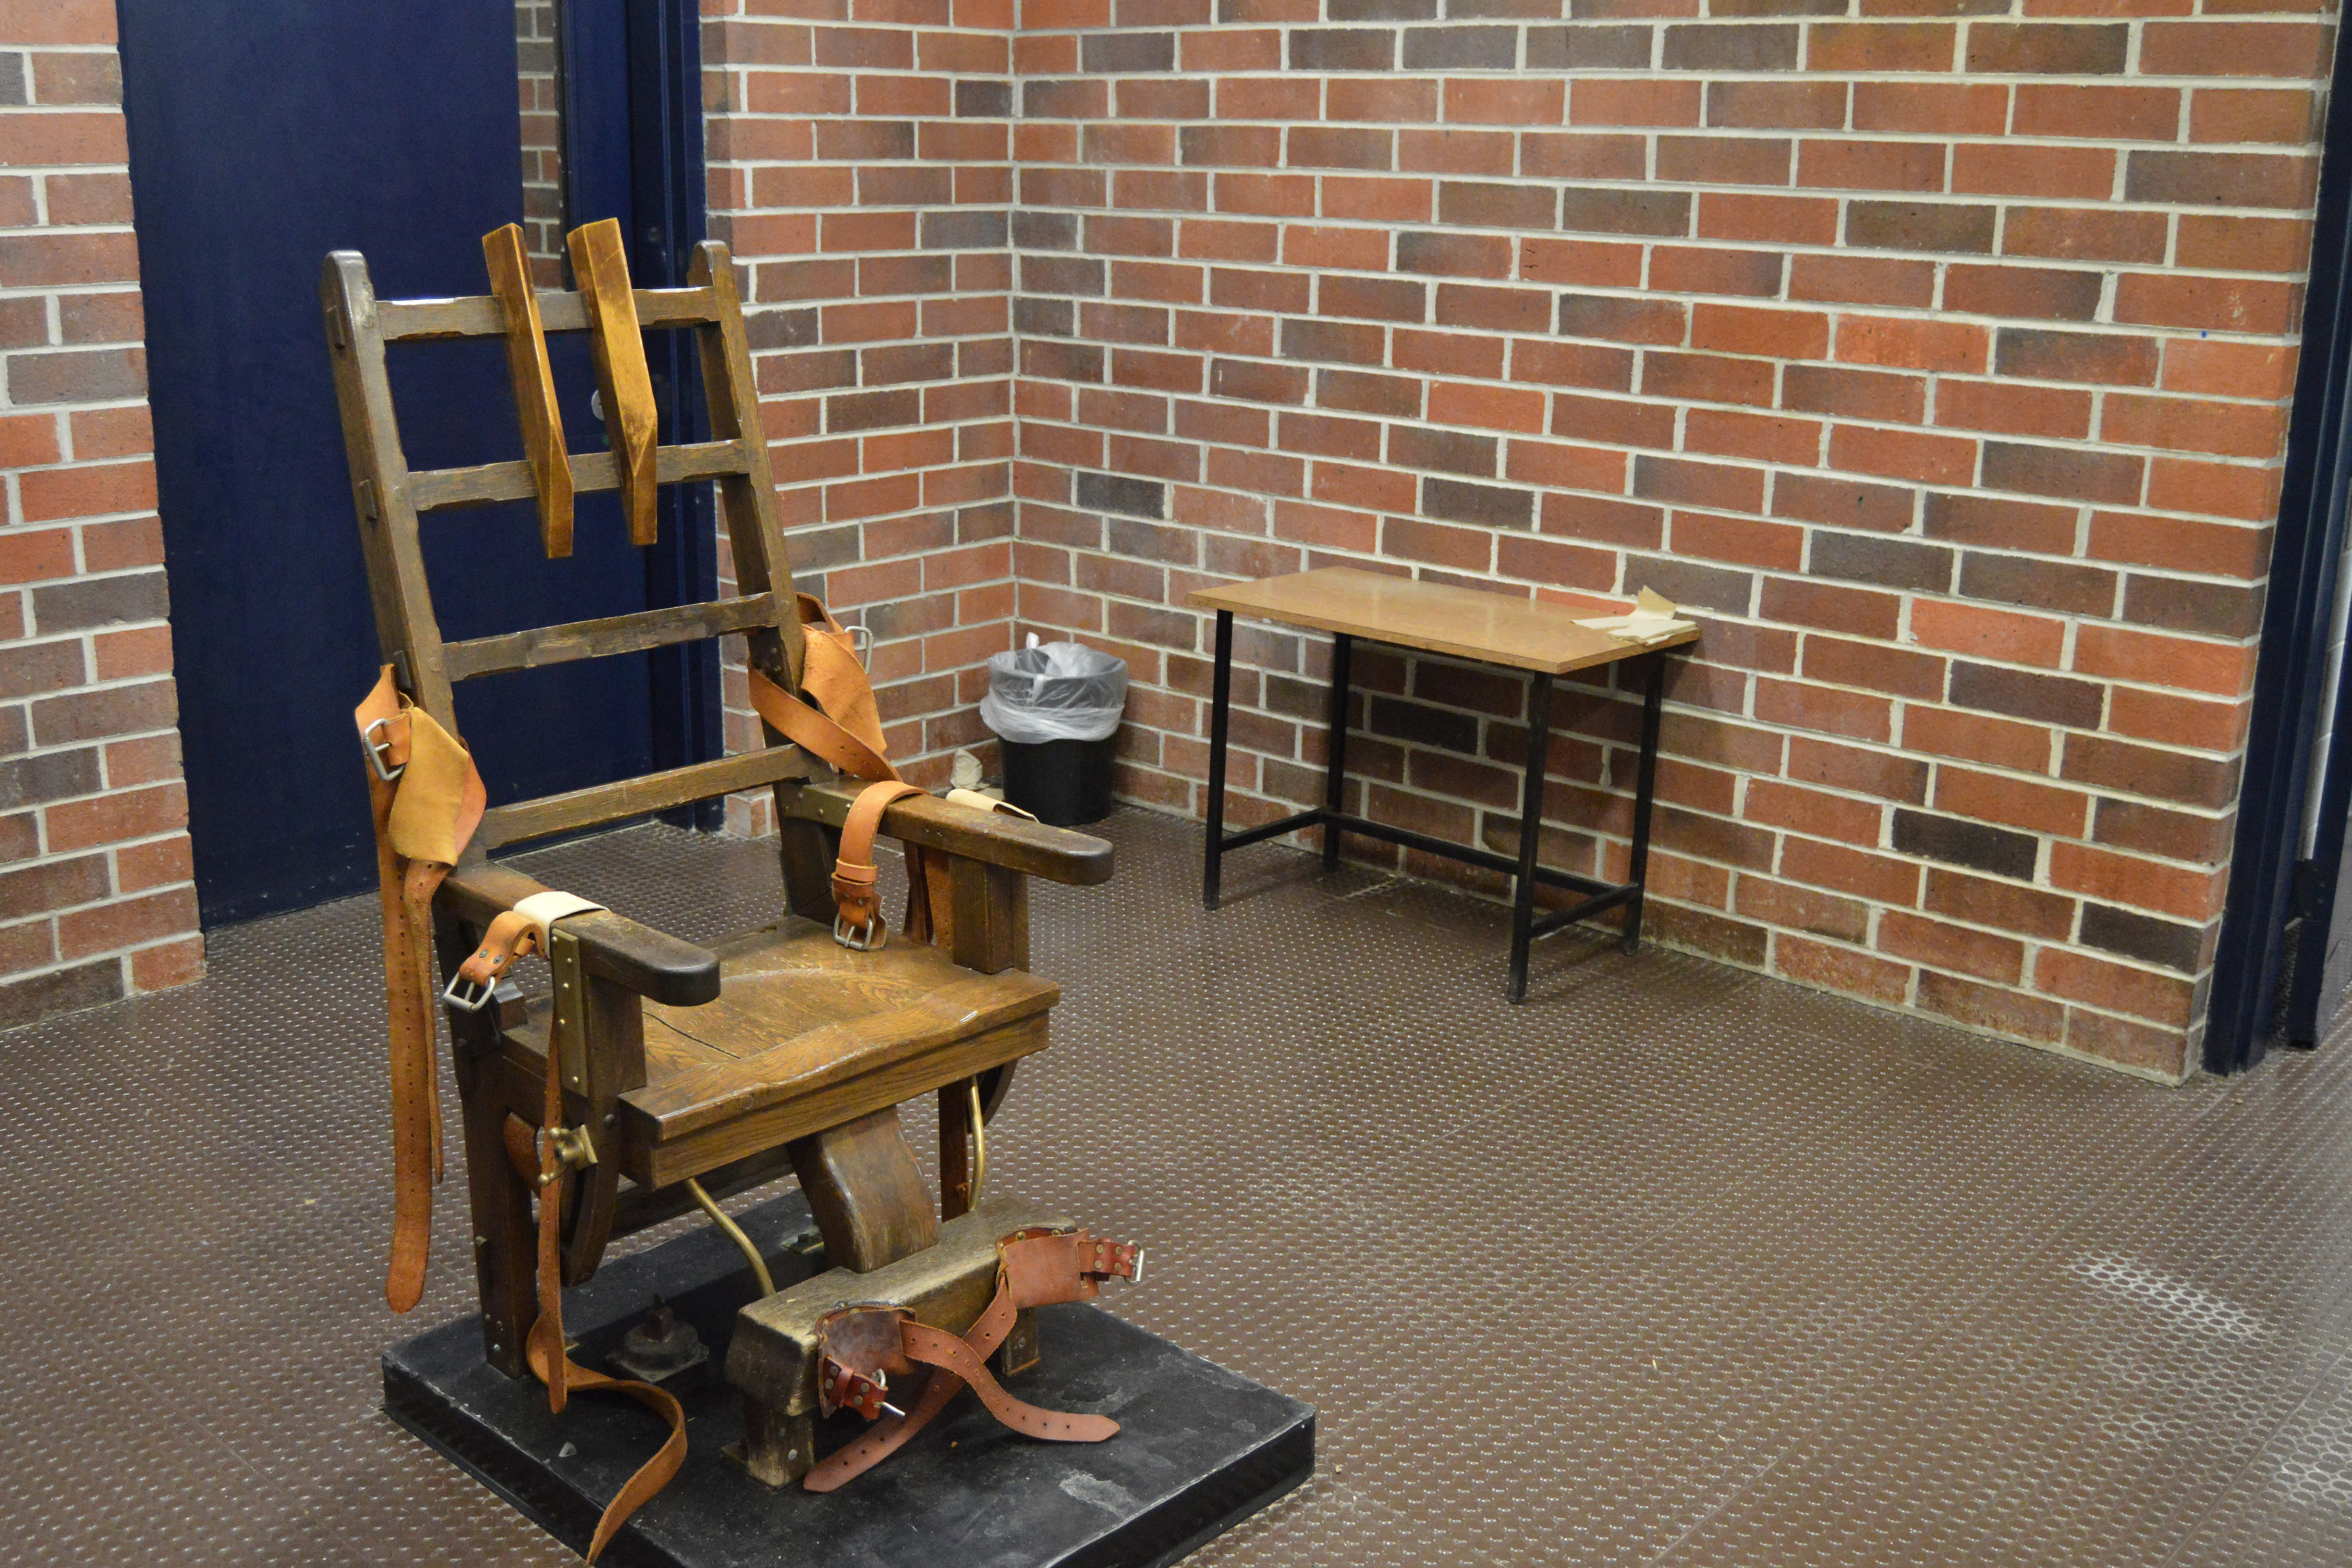 Executions halted until firing squad can be formed